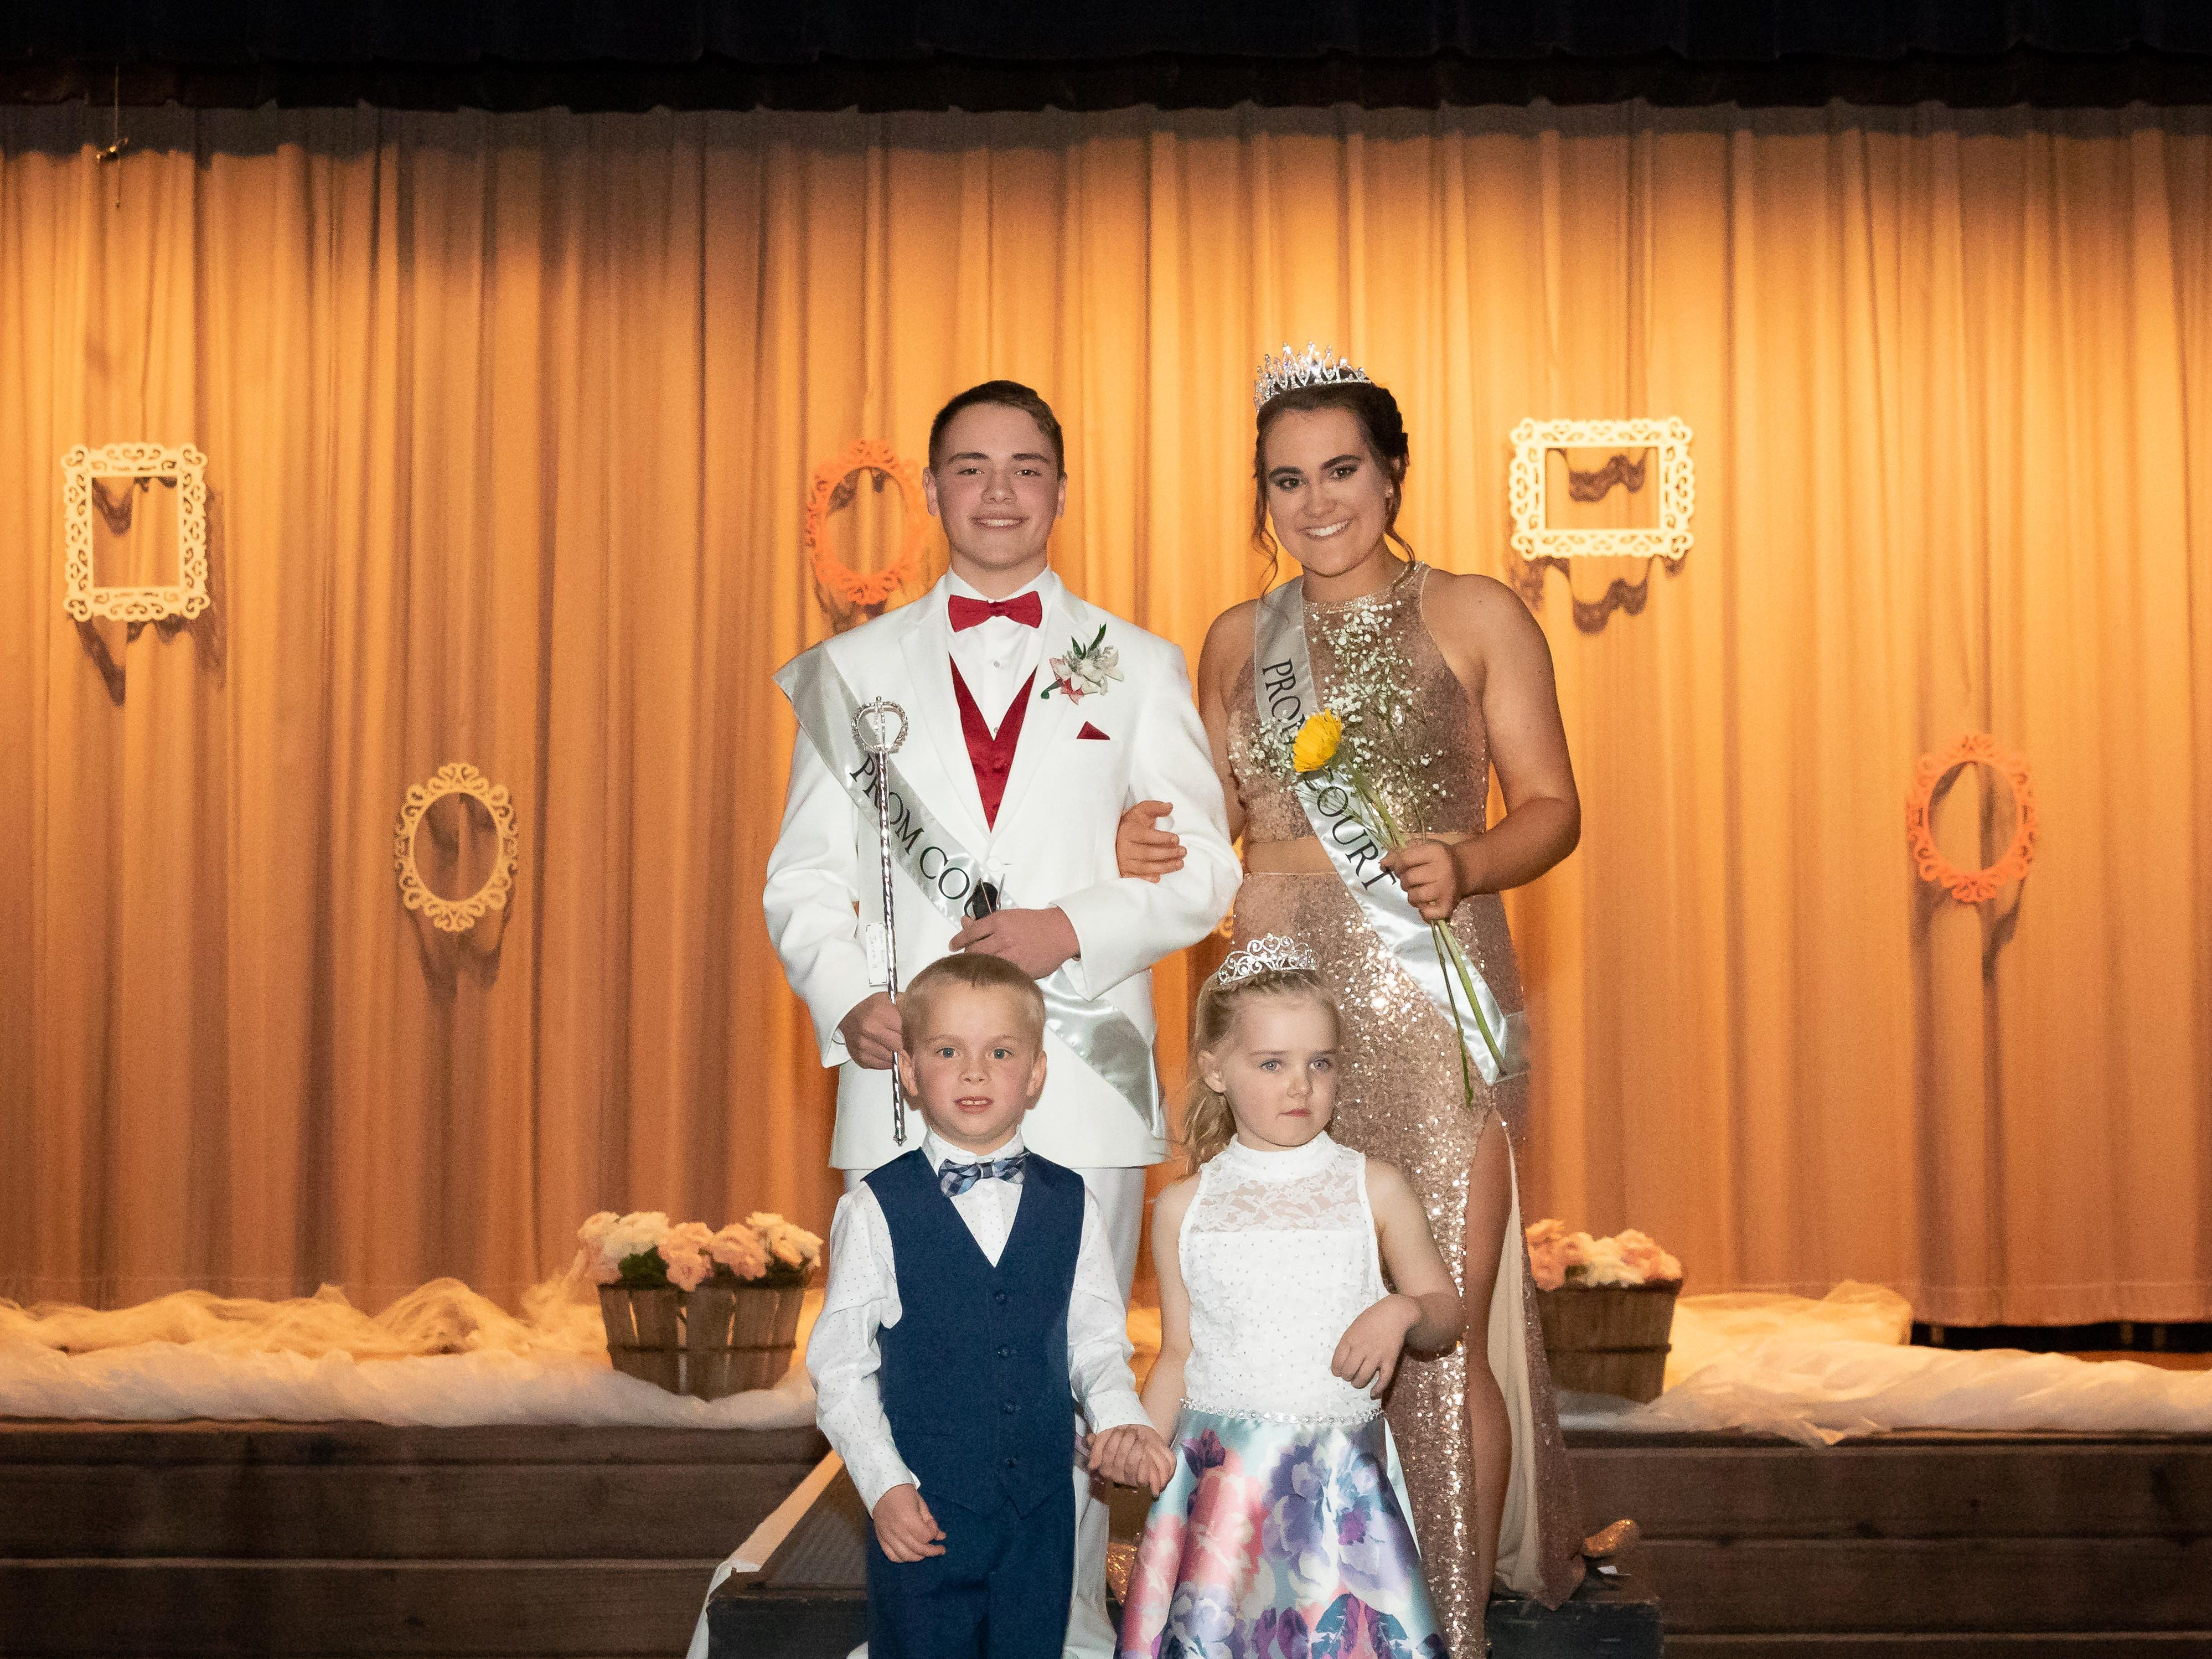 Prom King Jaret Hartley and Queen Calli Statz pose for a photo with miniature prom court members Logan Breu and Lux Lobner during the Assumption High School prom on Saturday, April 27, 2019, at the high school in Wisconsin Rapids.